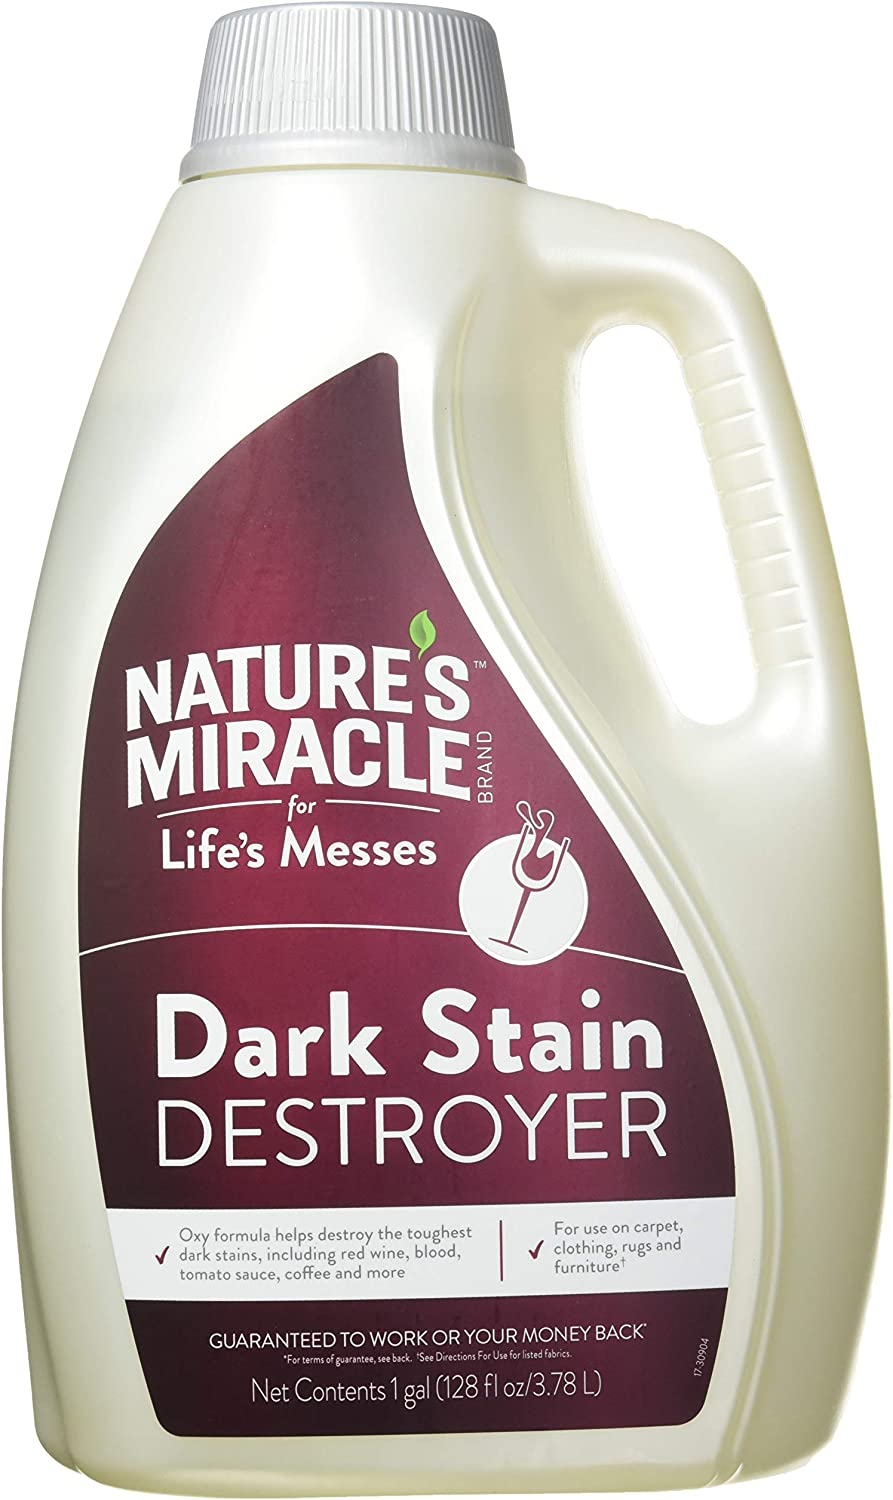 Nature's Miracle Dark Stain Destroyer, Designed for Life's Messes, 128 Fluid Ounce